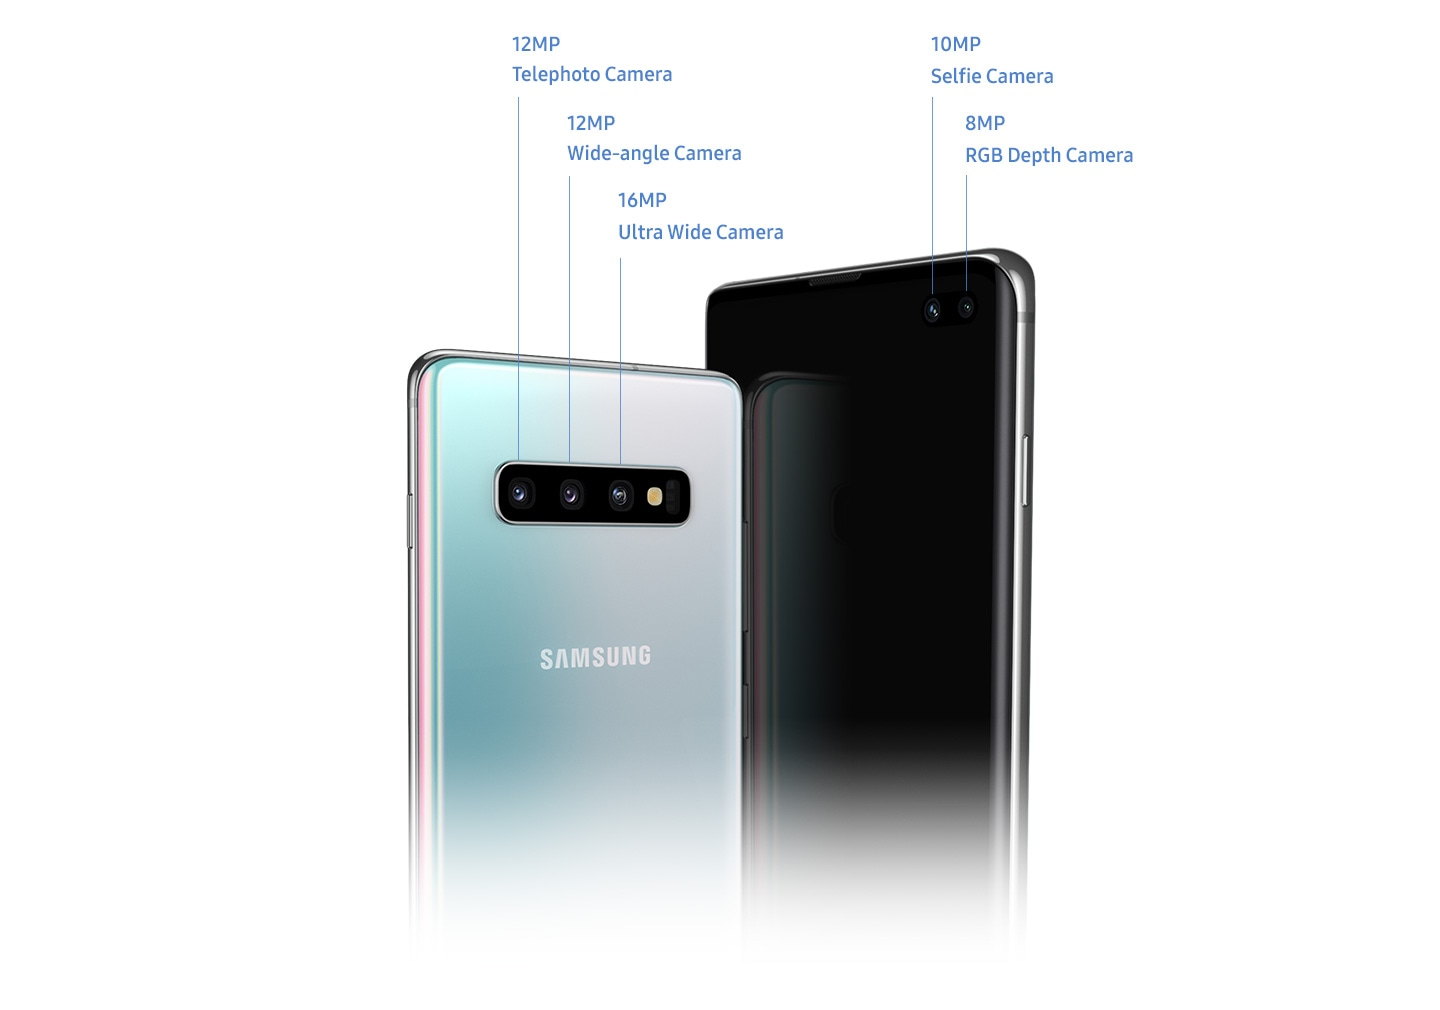 Two Galaxy S10 plus phones. One phone is seen from the back, showing the triple rear camera including 12MP Telephoto Camera, 12MP Wide-angle Camera and 16MP Ultra Wide Camera. The other phone is seen from the front, showing the dual front camera including 10MP Selfie Camera and 8MP Depth Camera.